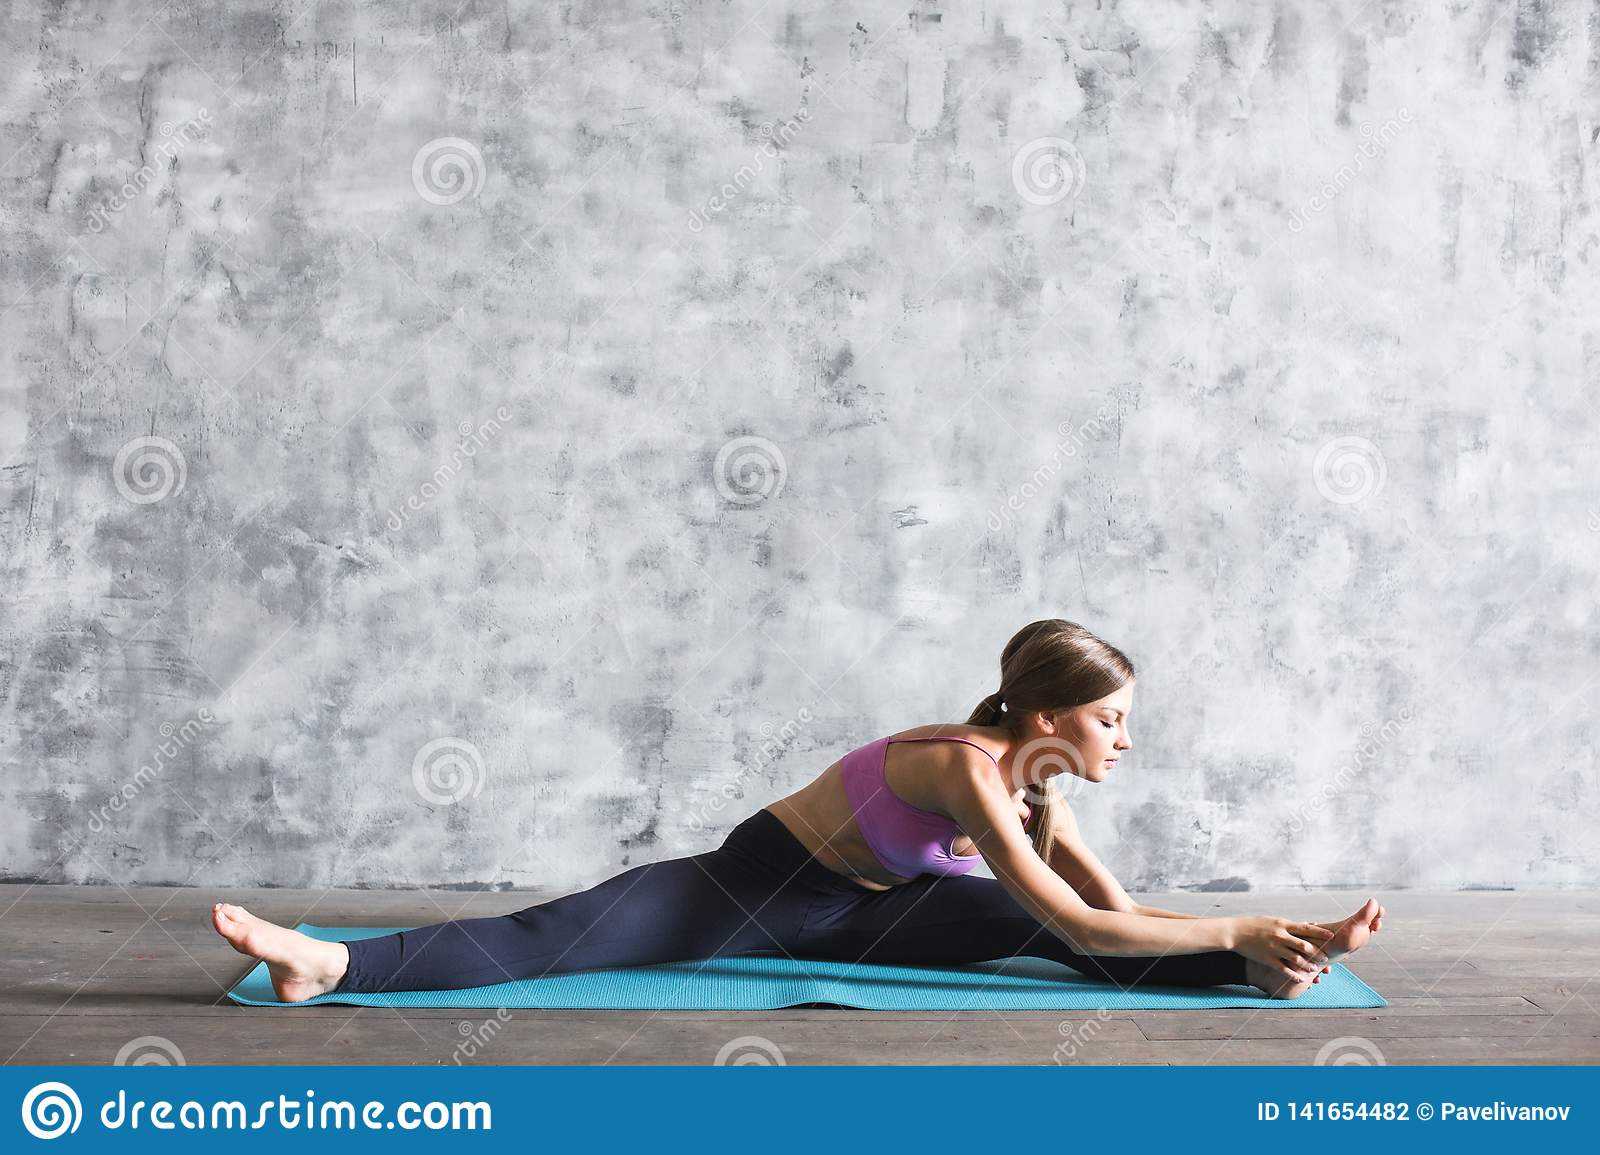 Woman in sportswear doing stretching exercises on a yoga mat in the gym